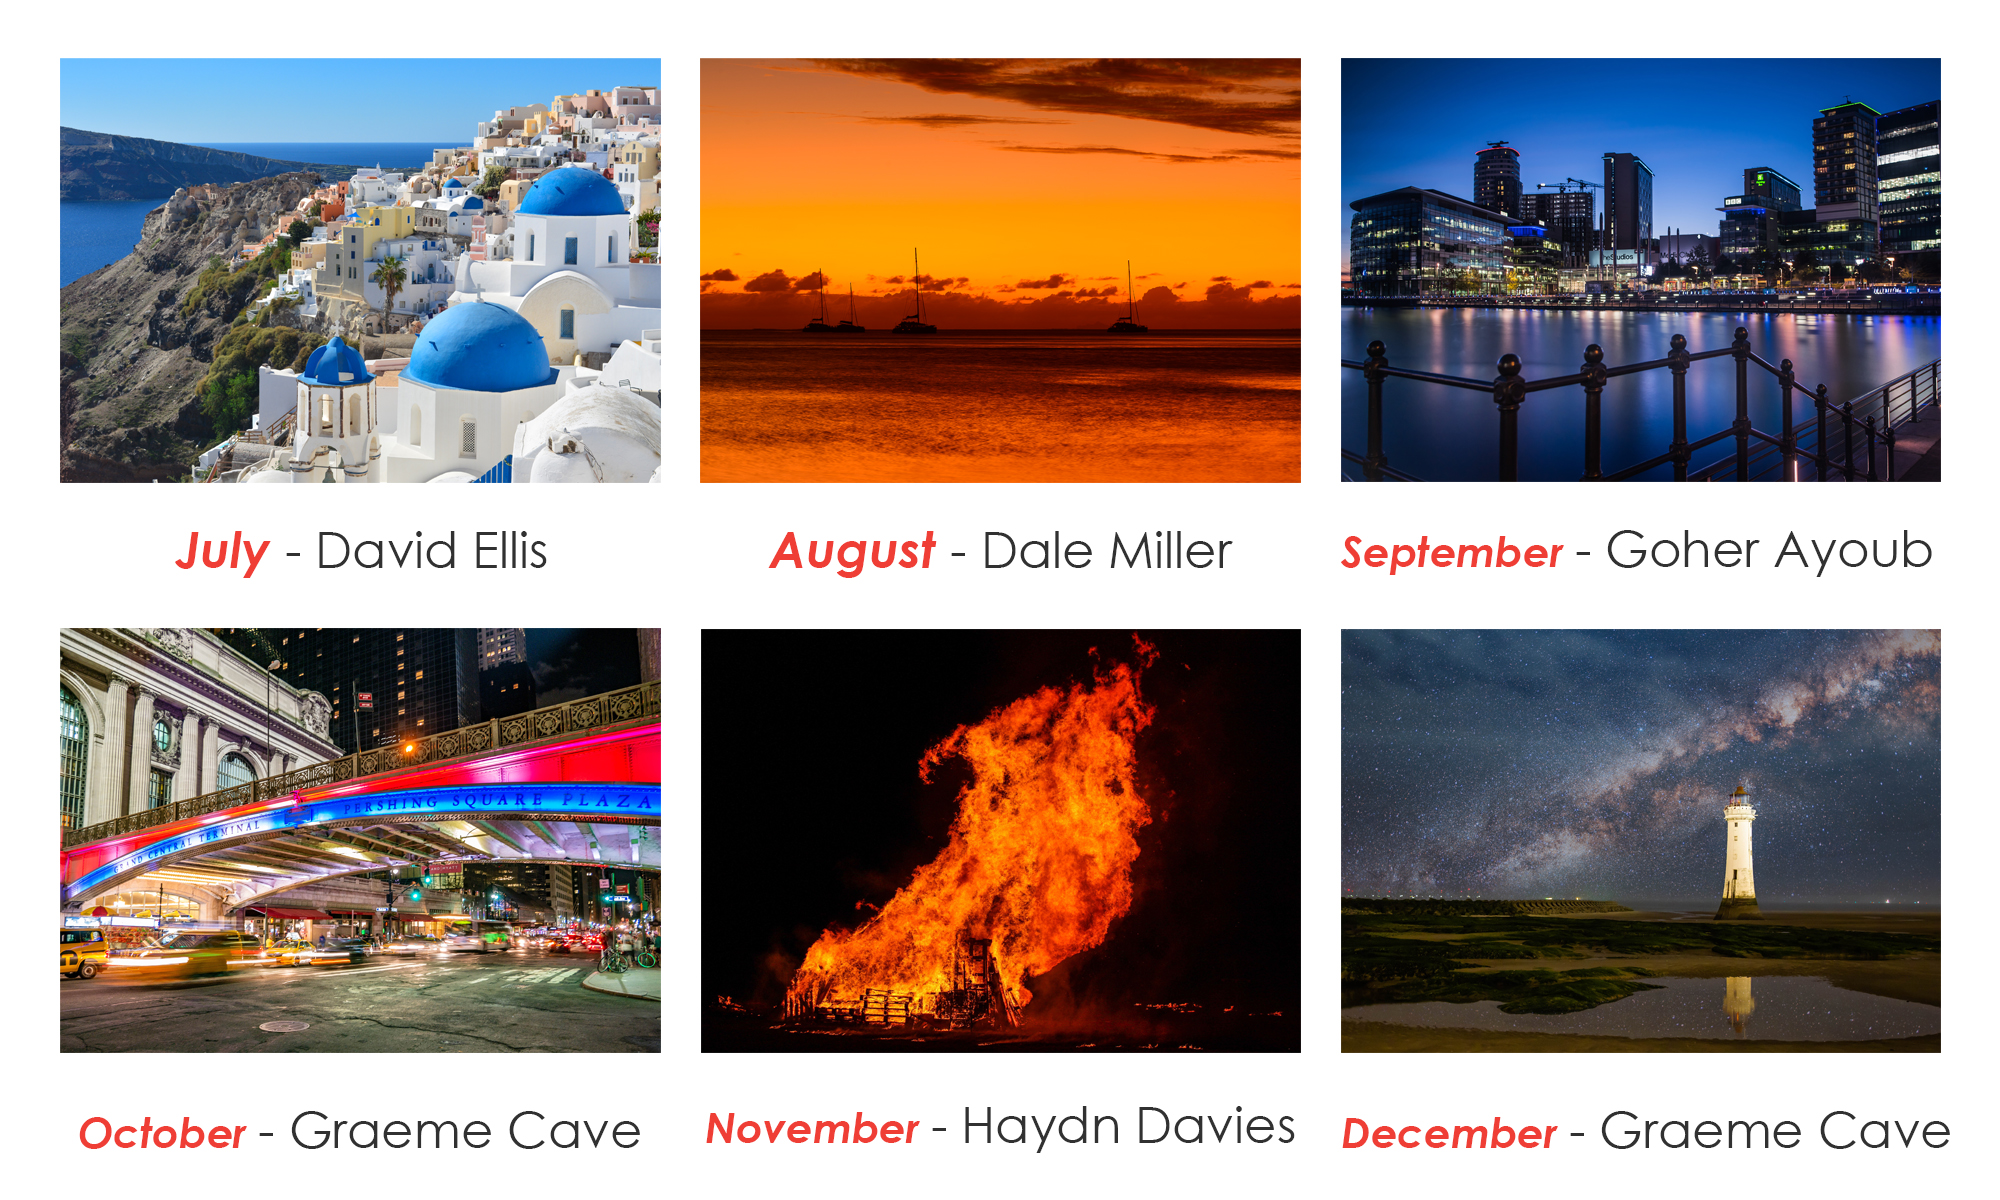 2019 Calendar Competition: And the winners are...